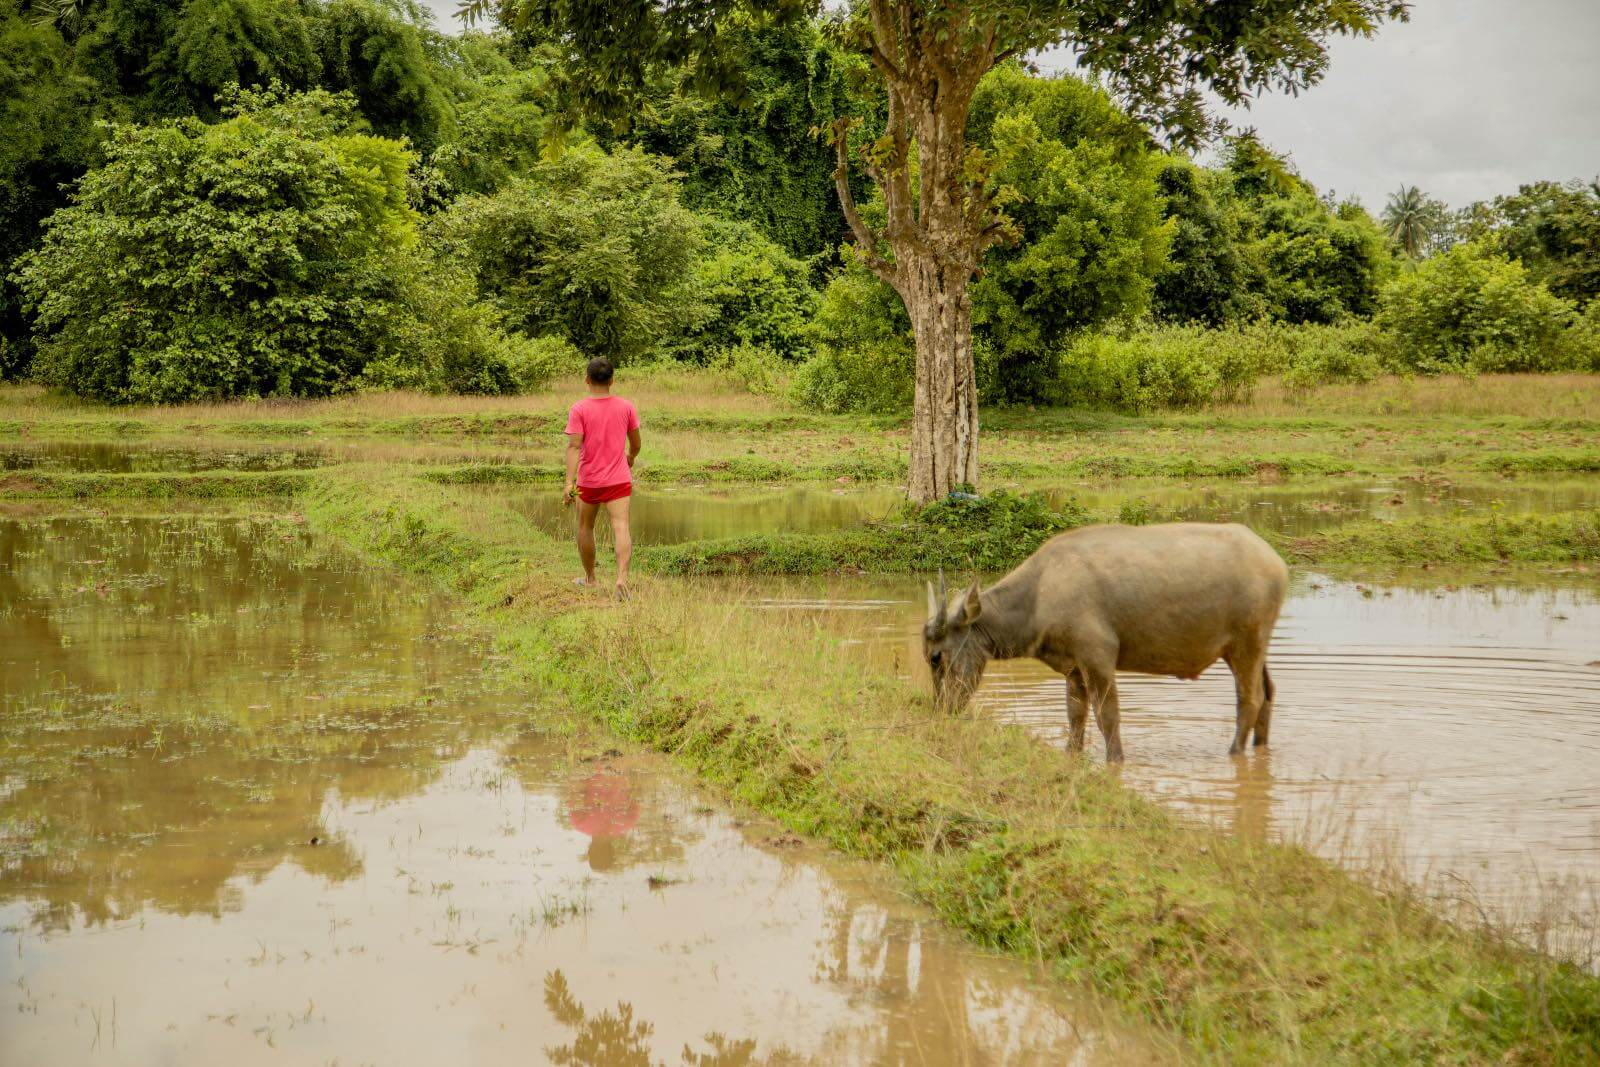 water Buffalo and a man in a field on Don Det, Laos island